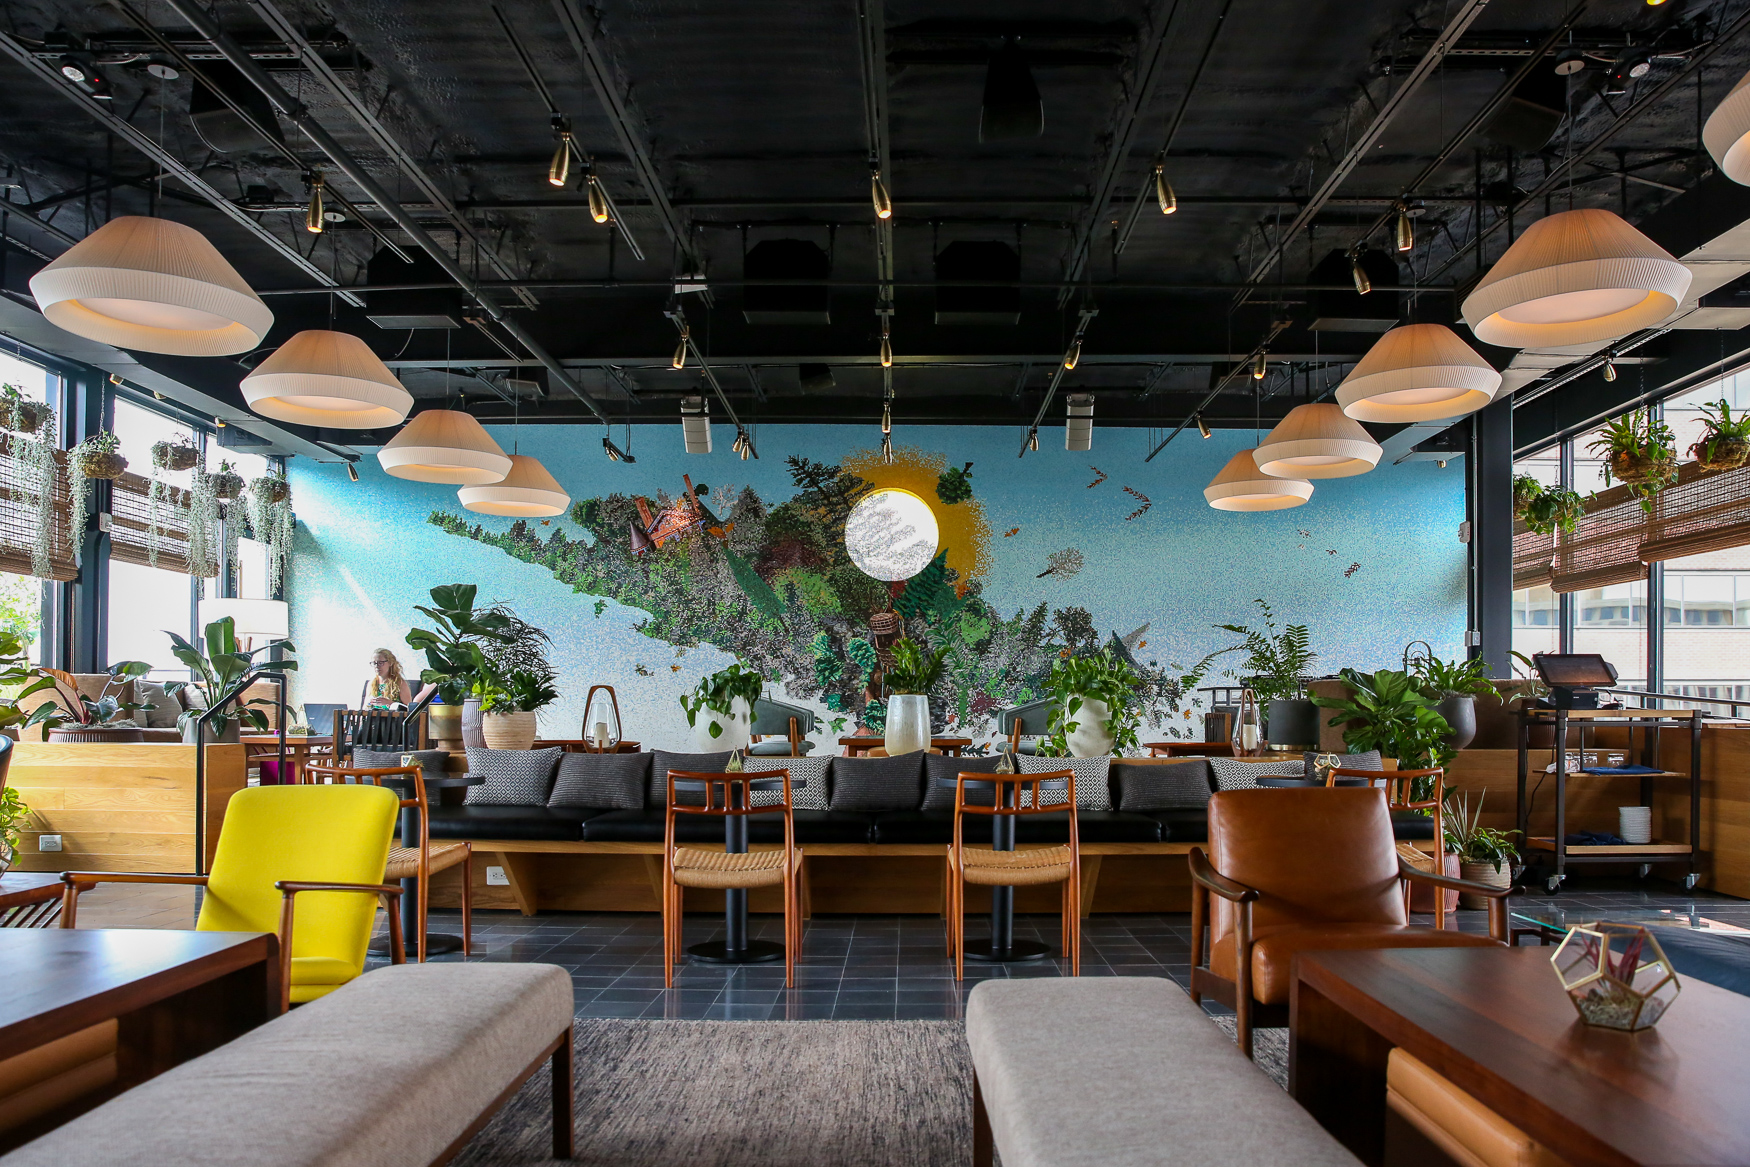 Wild Days, Eaton's rooftop bar, is sure to be a hit with its relaxing chairs and stunning mosaic interiors. (Amanda Andrade-Rhoades/DC Refined)<br>